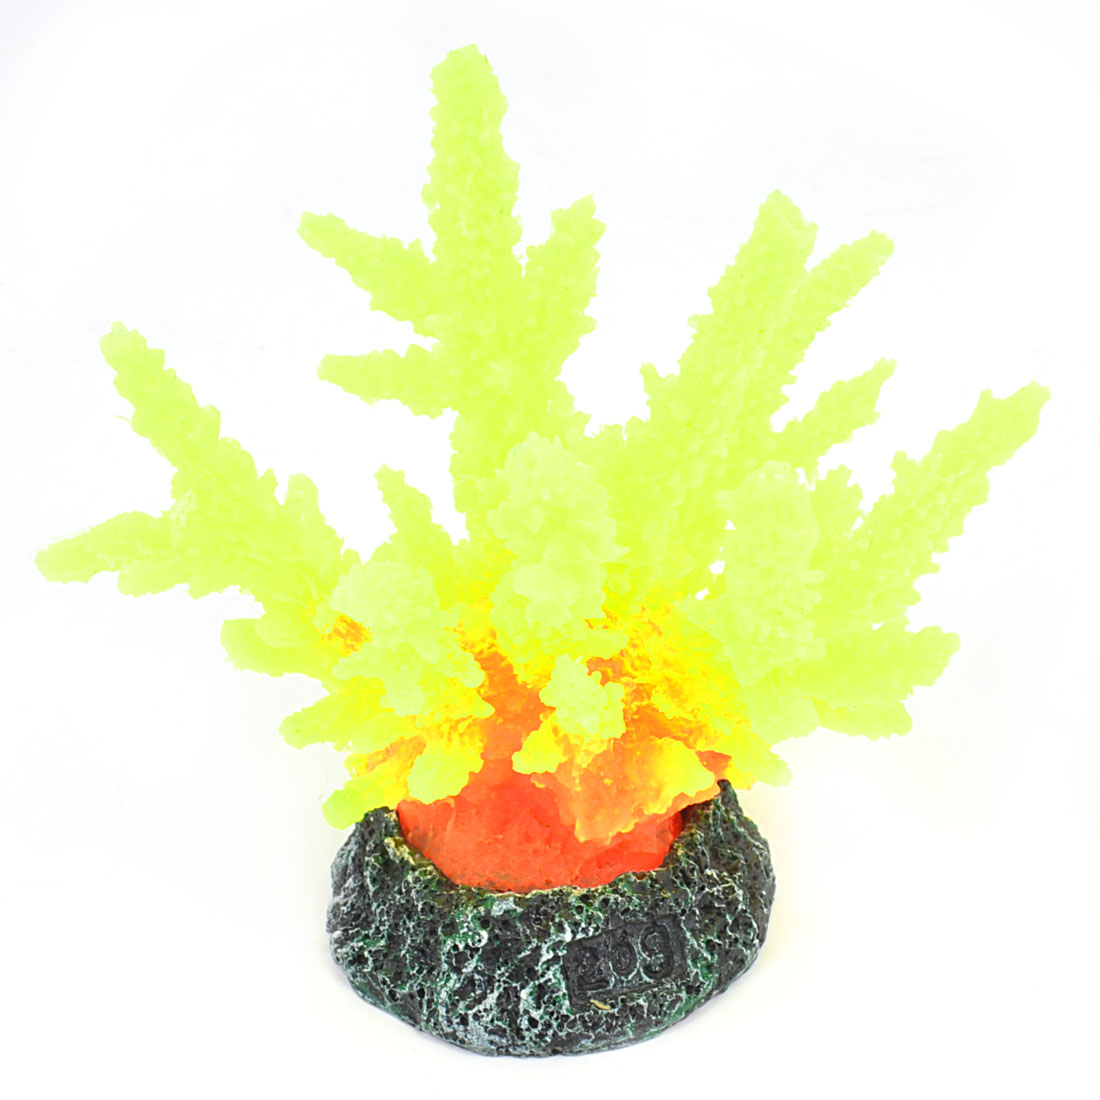 Aquarium Yellow Atificial Emulational Silicone Coral Adorn w Ceramic Base